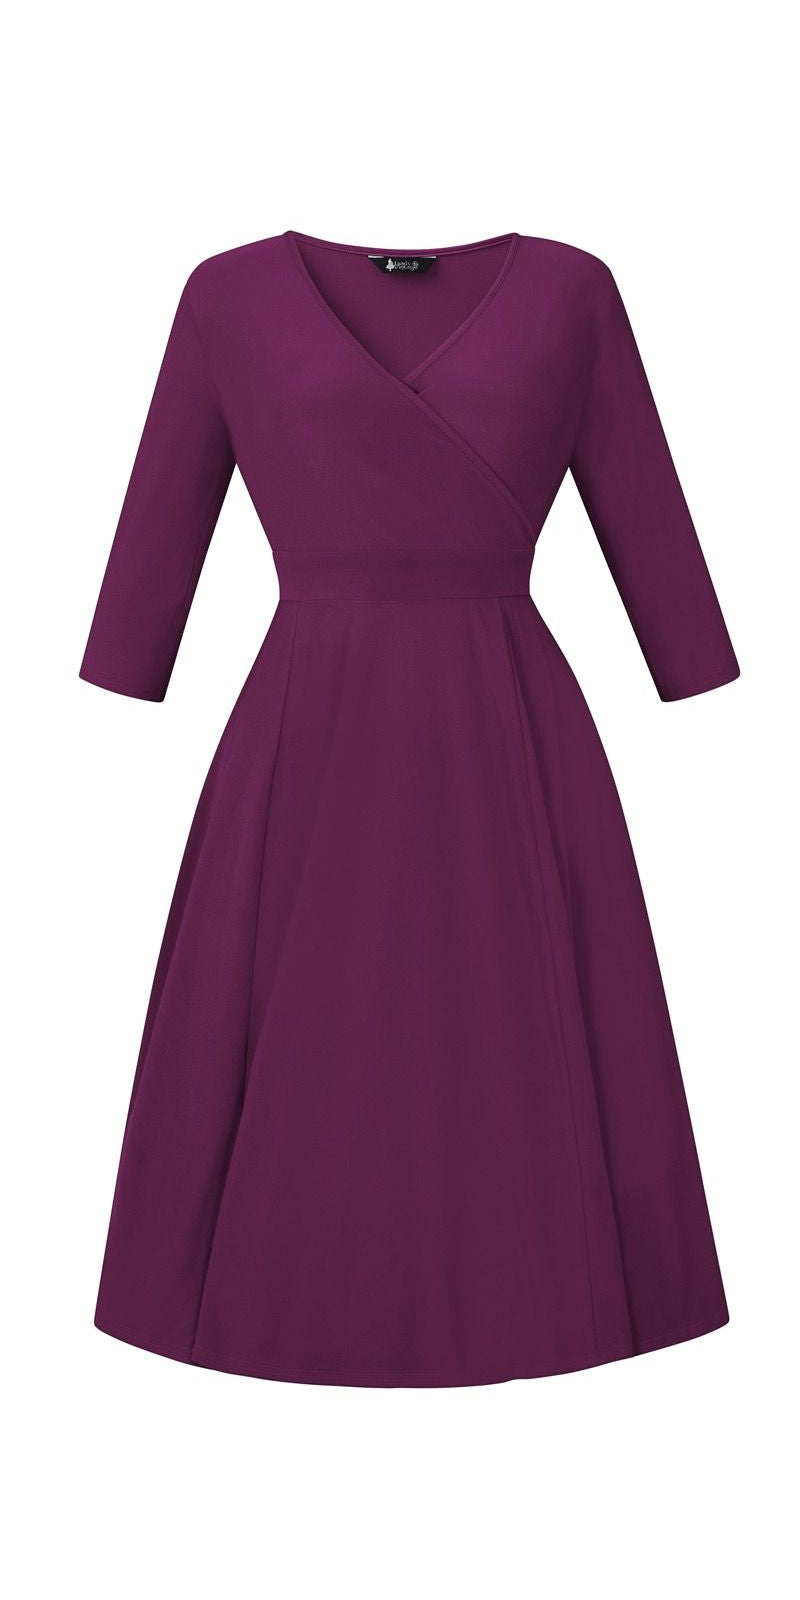 Lyra Violet Dress - Long Sleeves